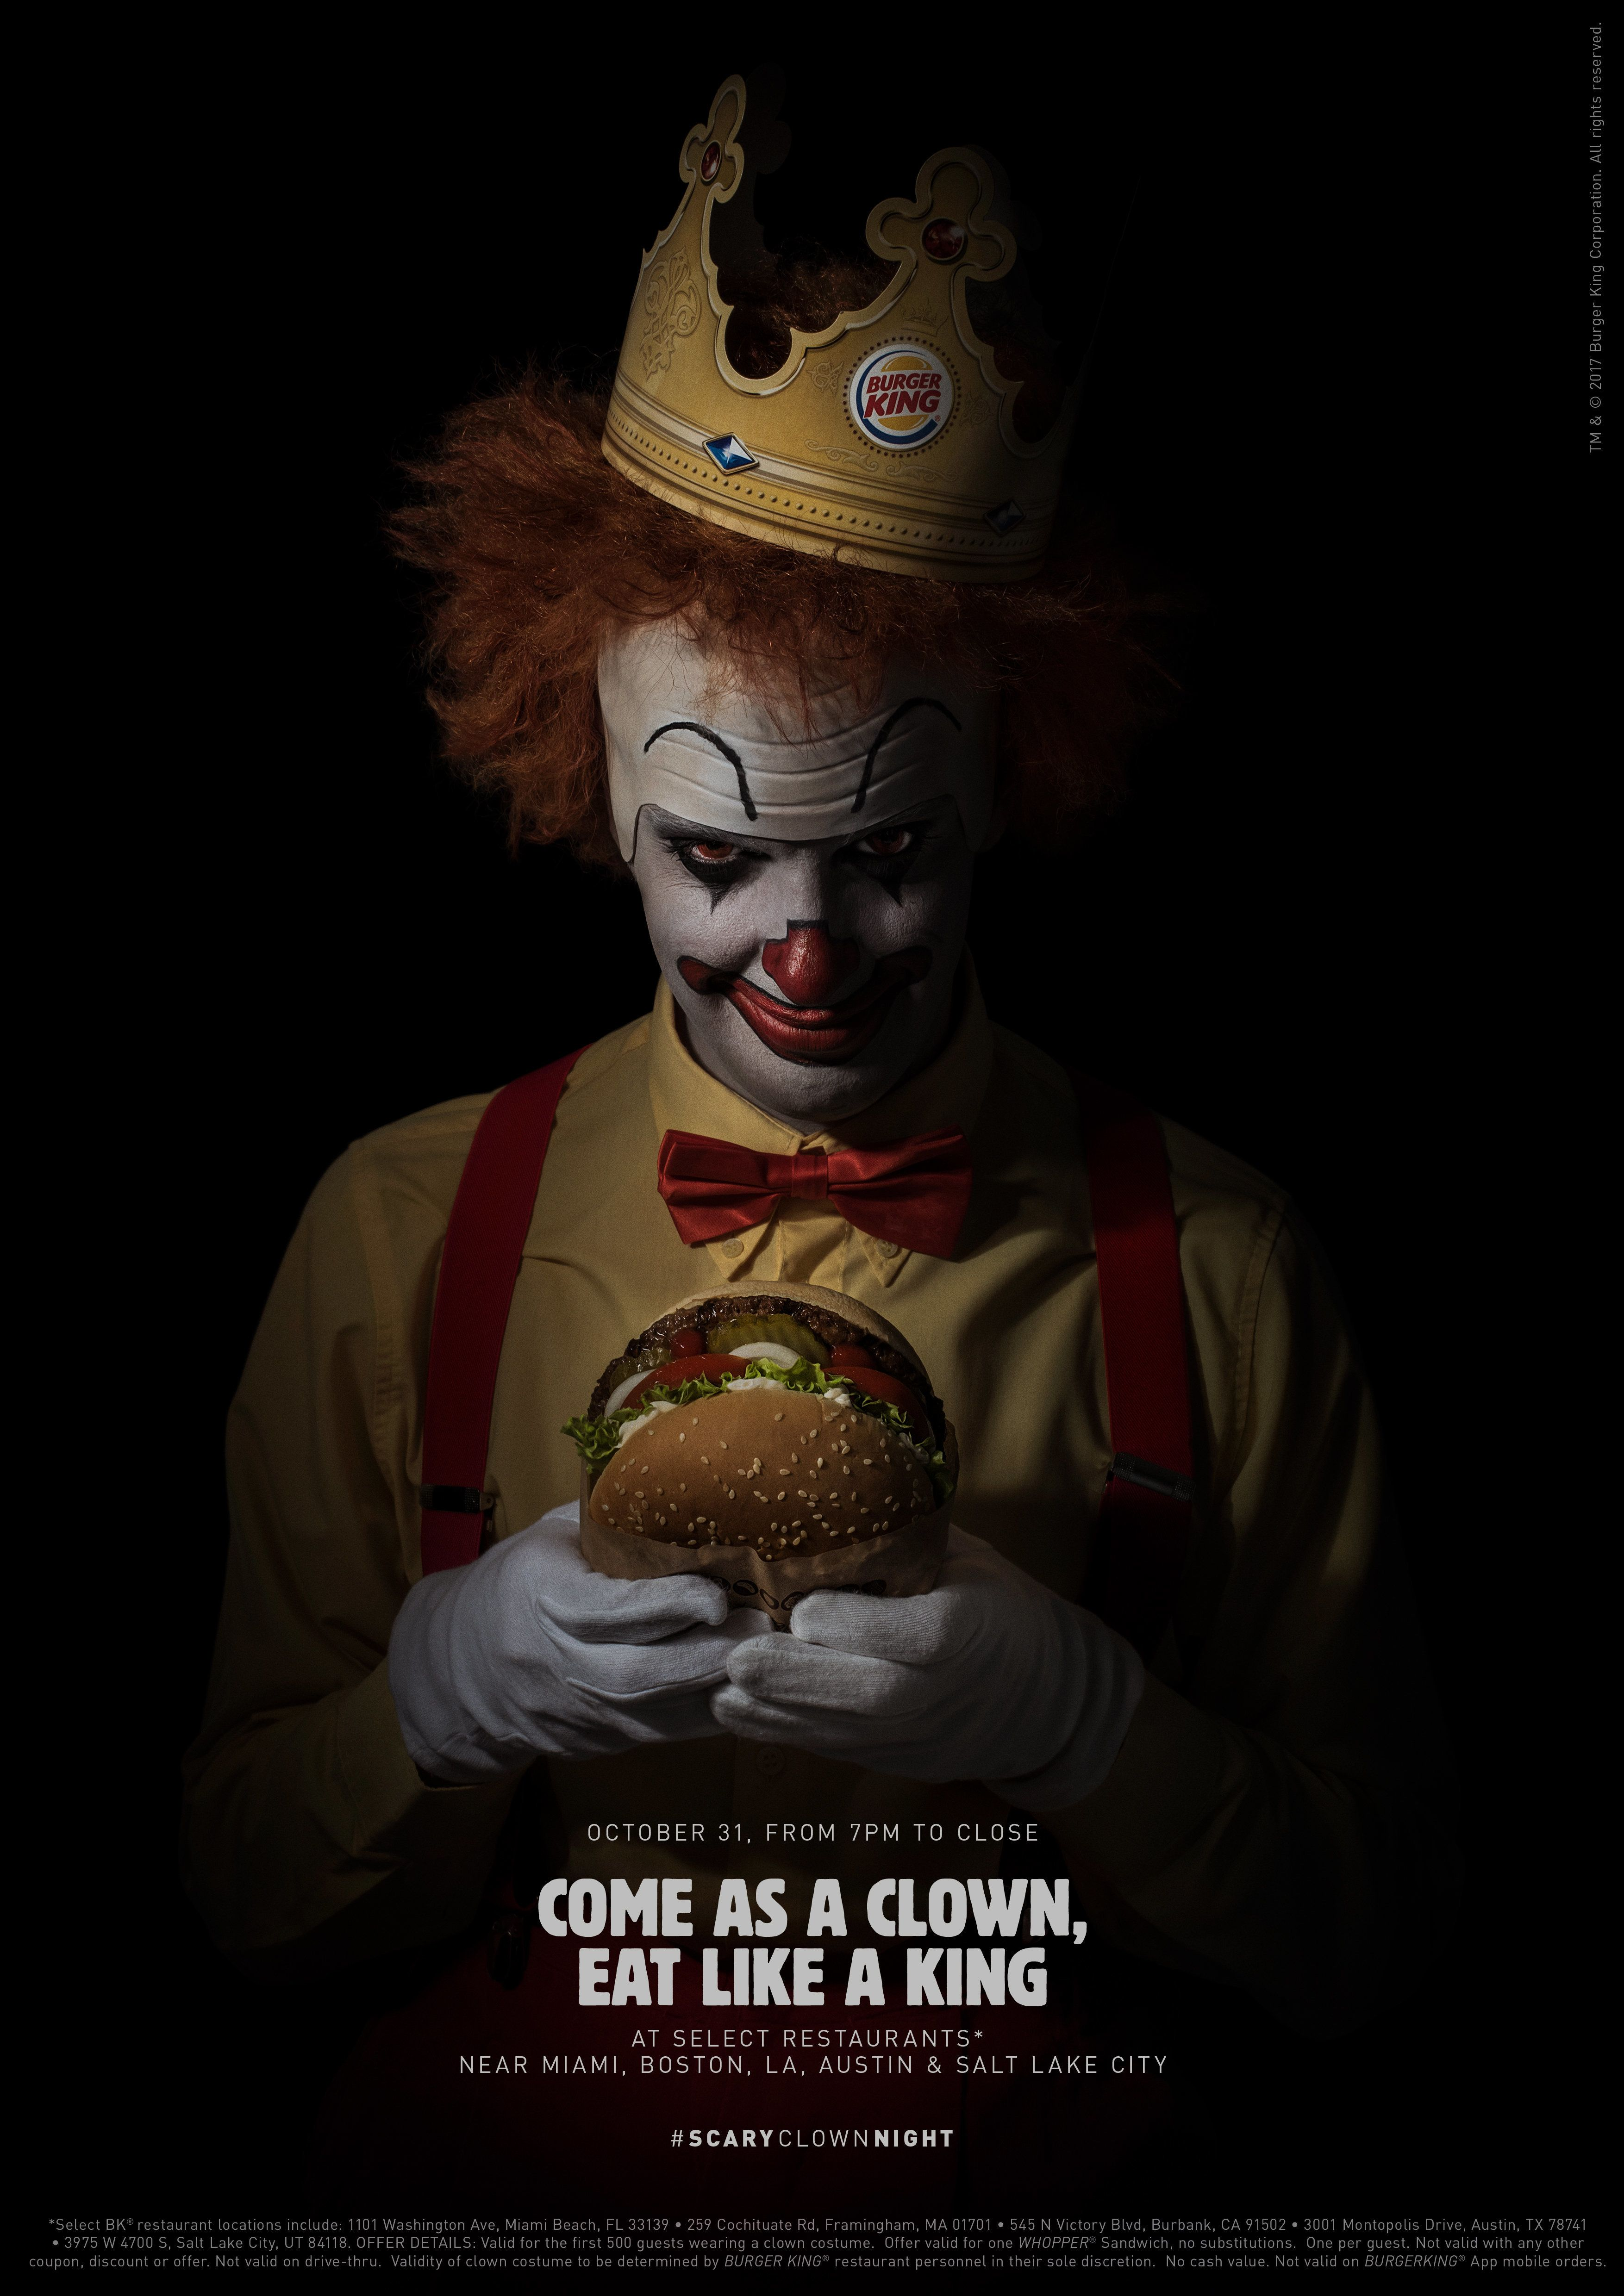 Select Burger King restaurants will hand out free Whopper sandwiches to up to 2,500 people dressed like clowns this Halloween